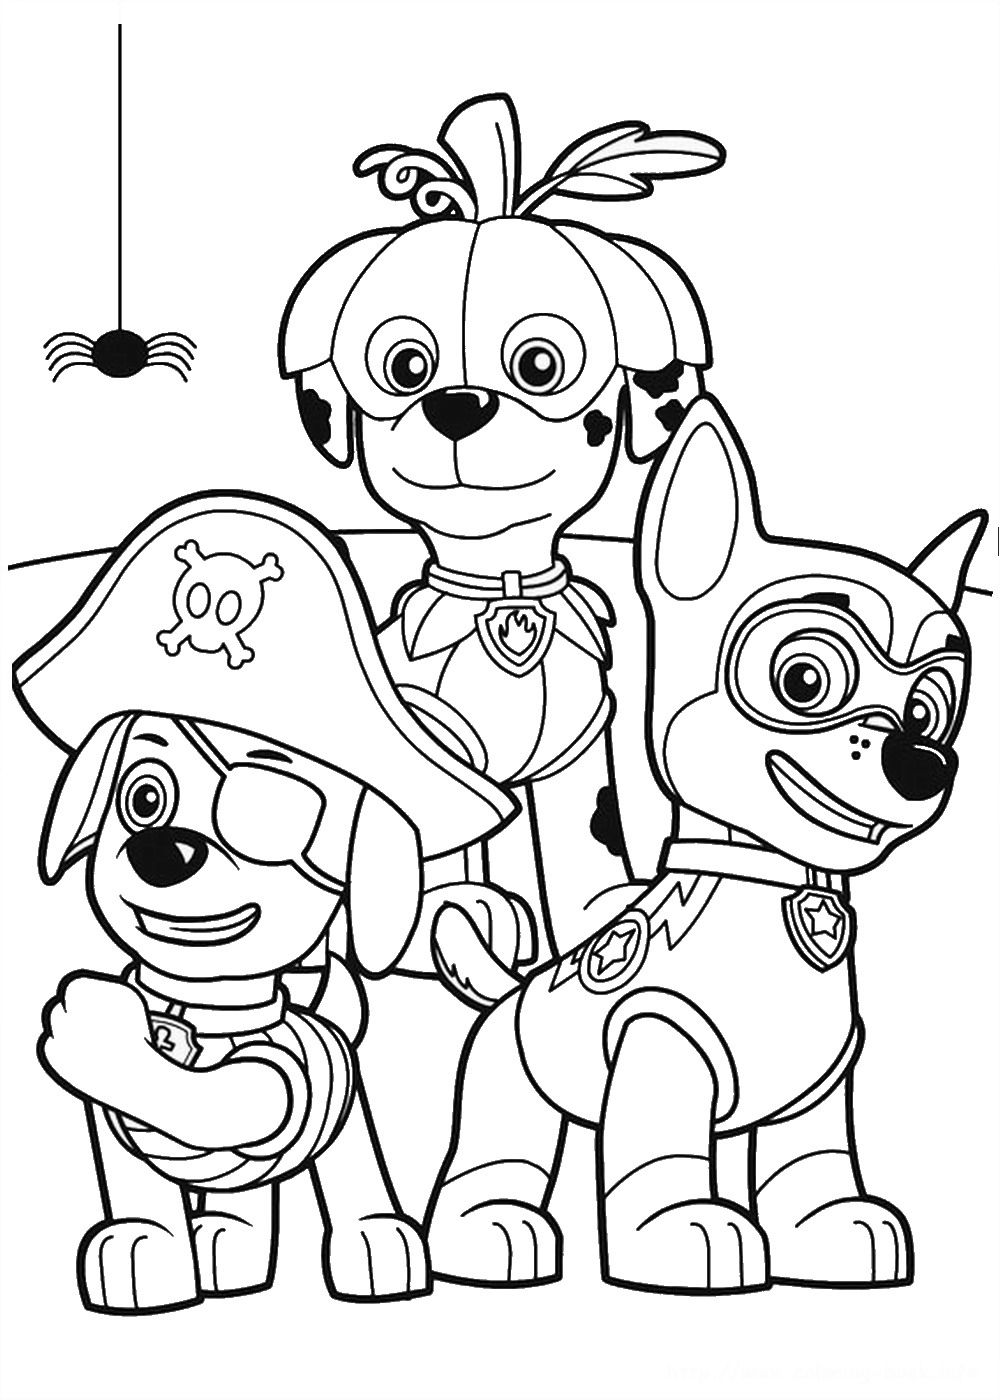 Paw Patrol Coloring Pages Free Halloween Coloring Pages Halloween Coloring Sheets Paw Patrol Coloring